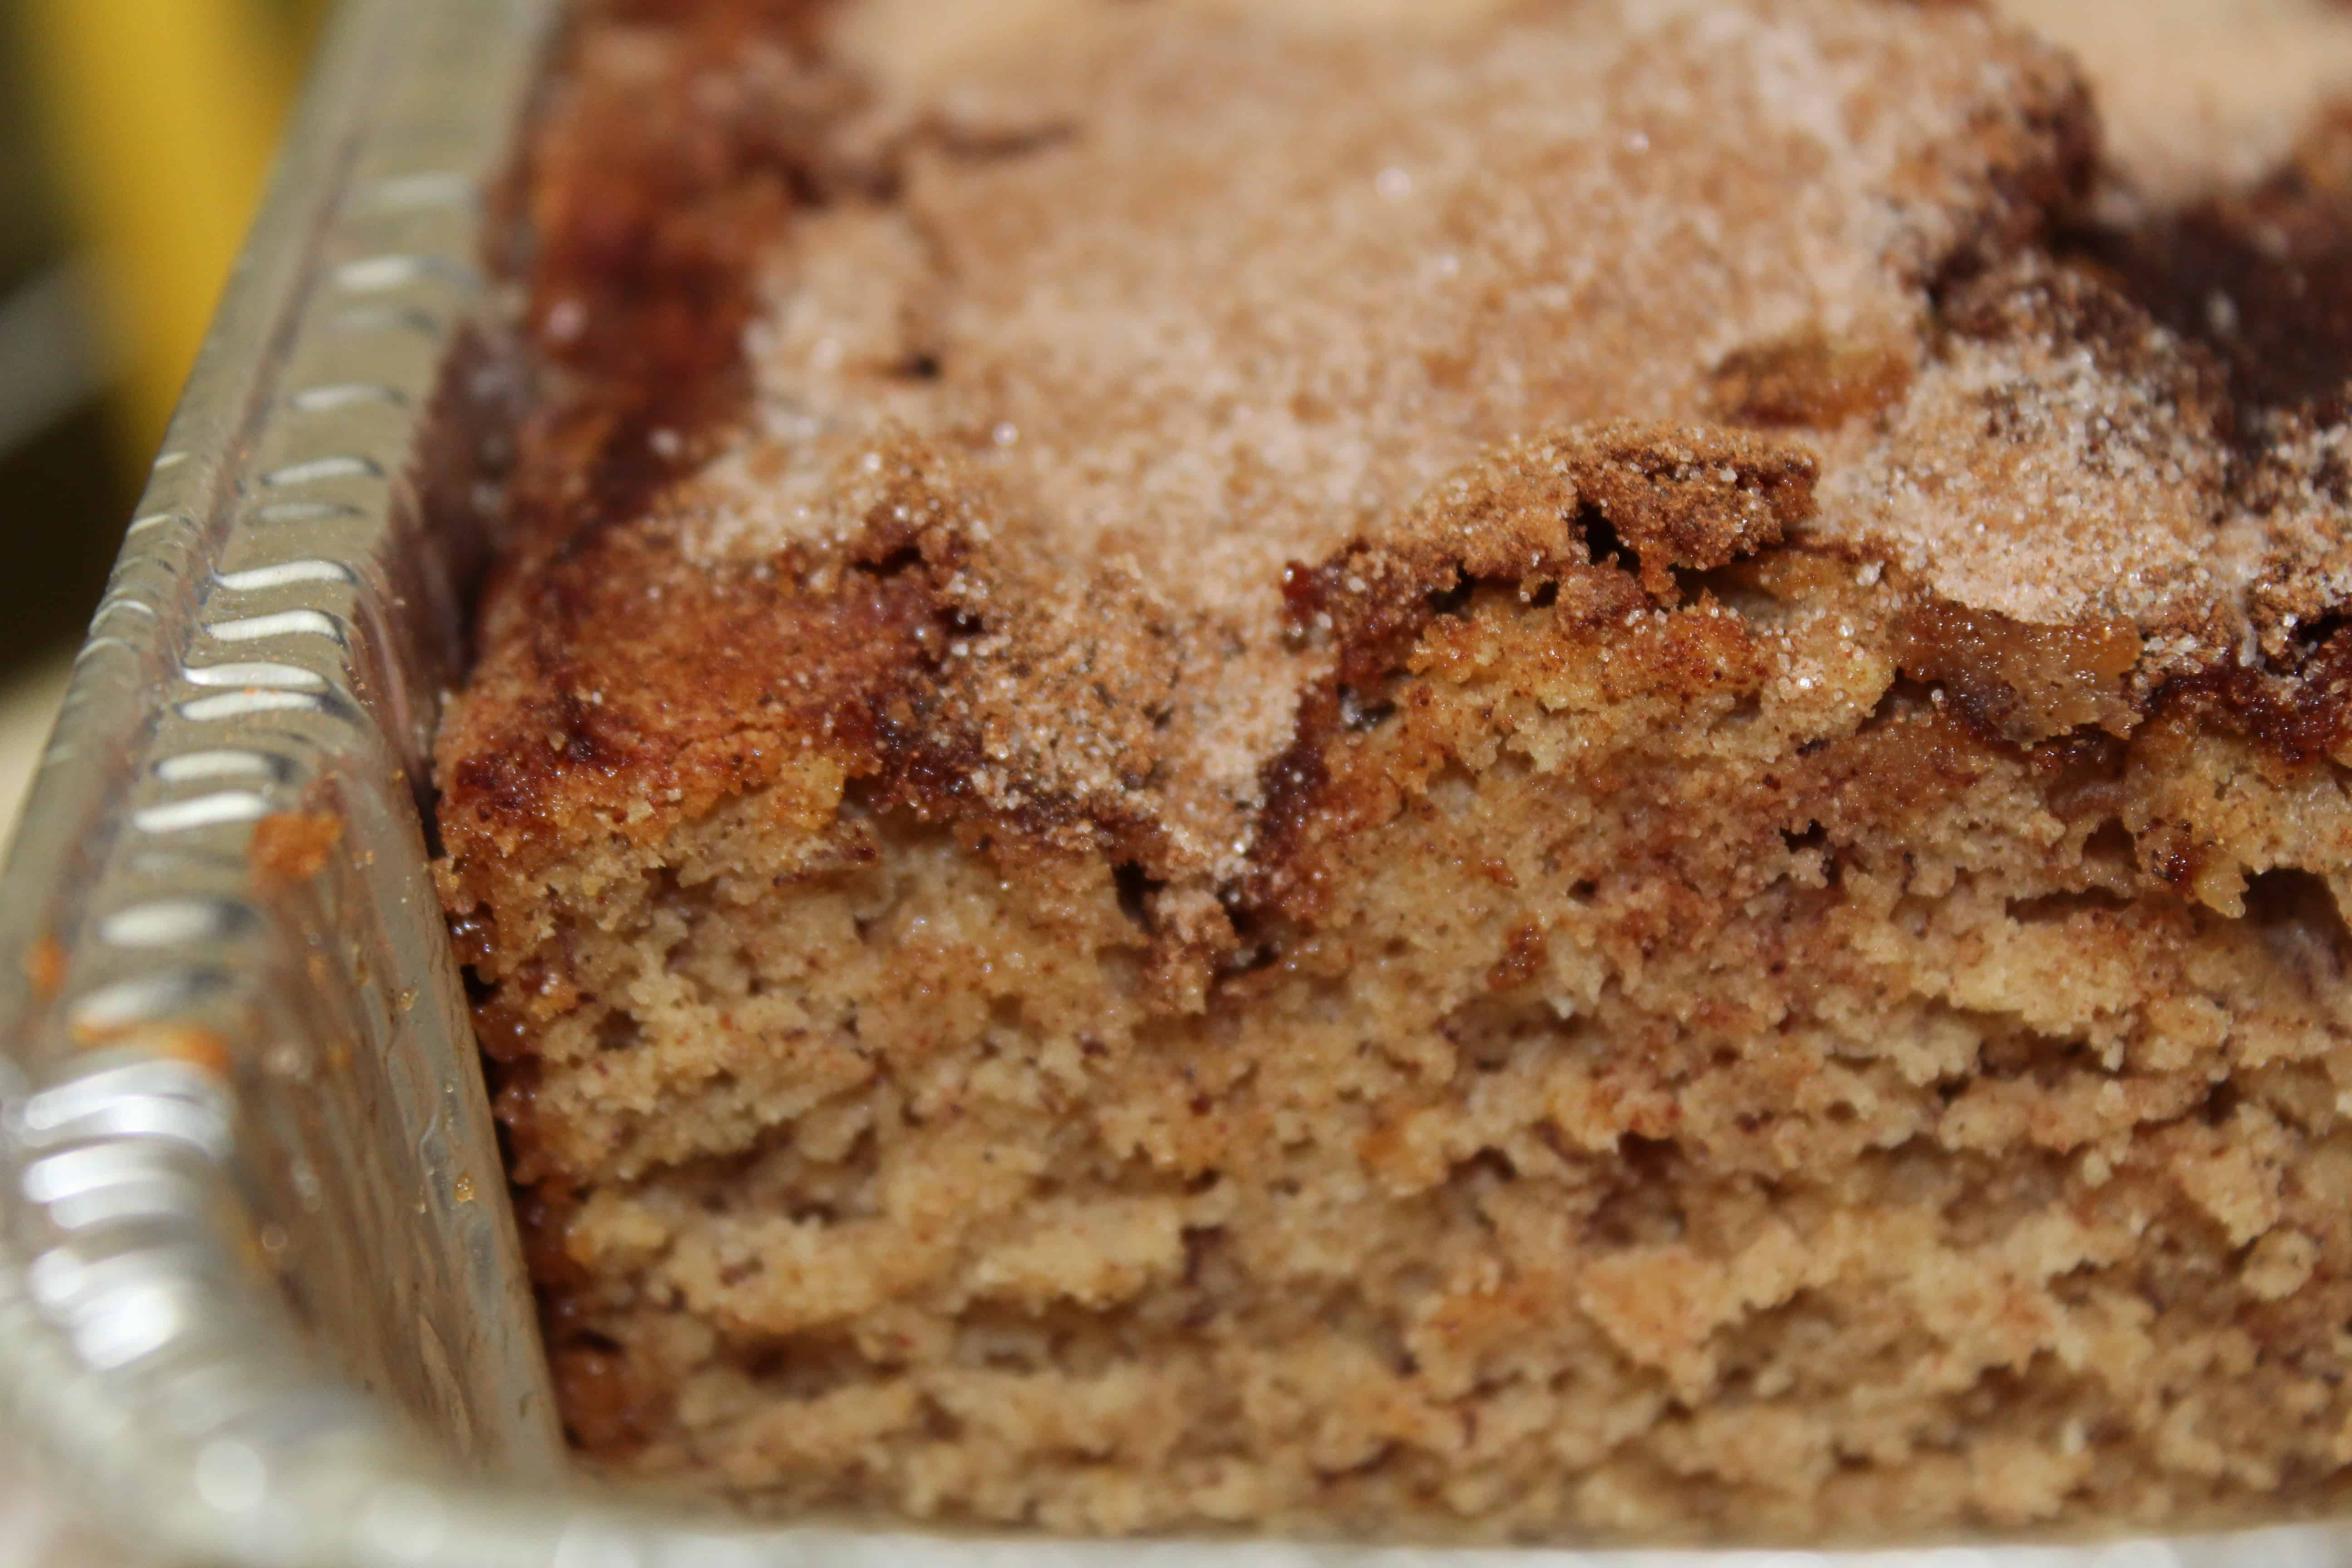 Cooked banana bread cut into to show the inside.